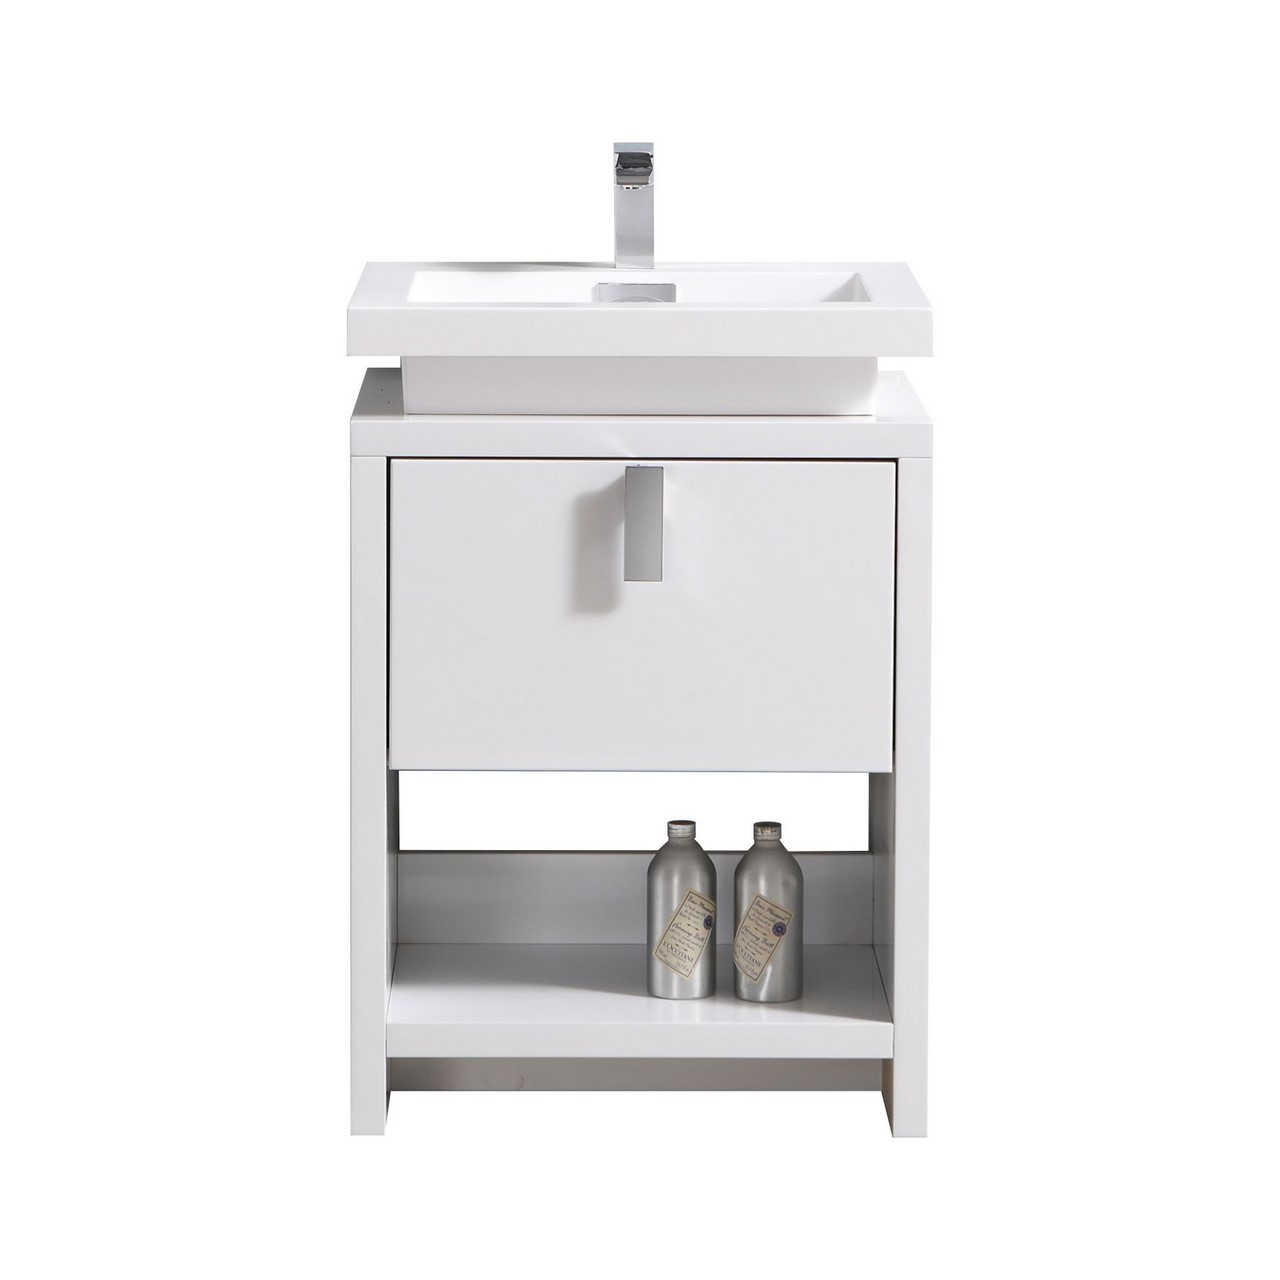 "Modern Lux 24"" High Gloss White Modern Bathroom Vanity w/ Cubby Hole"